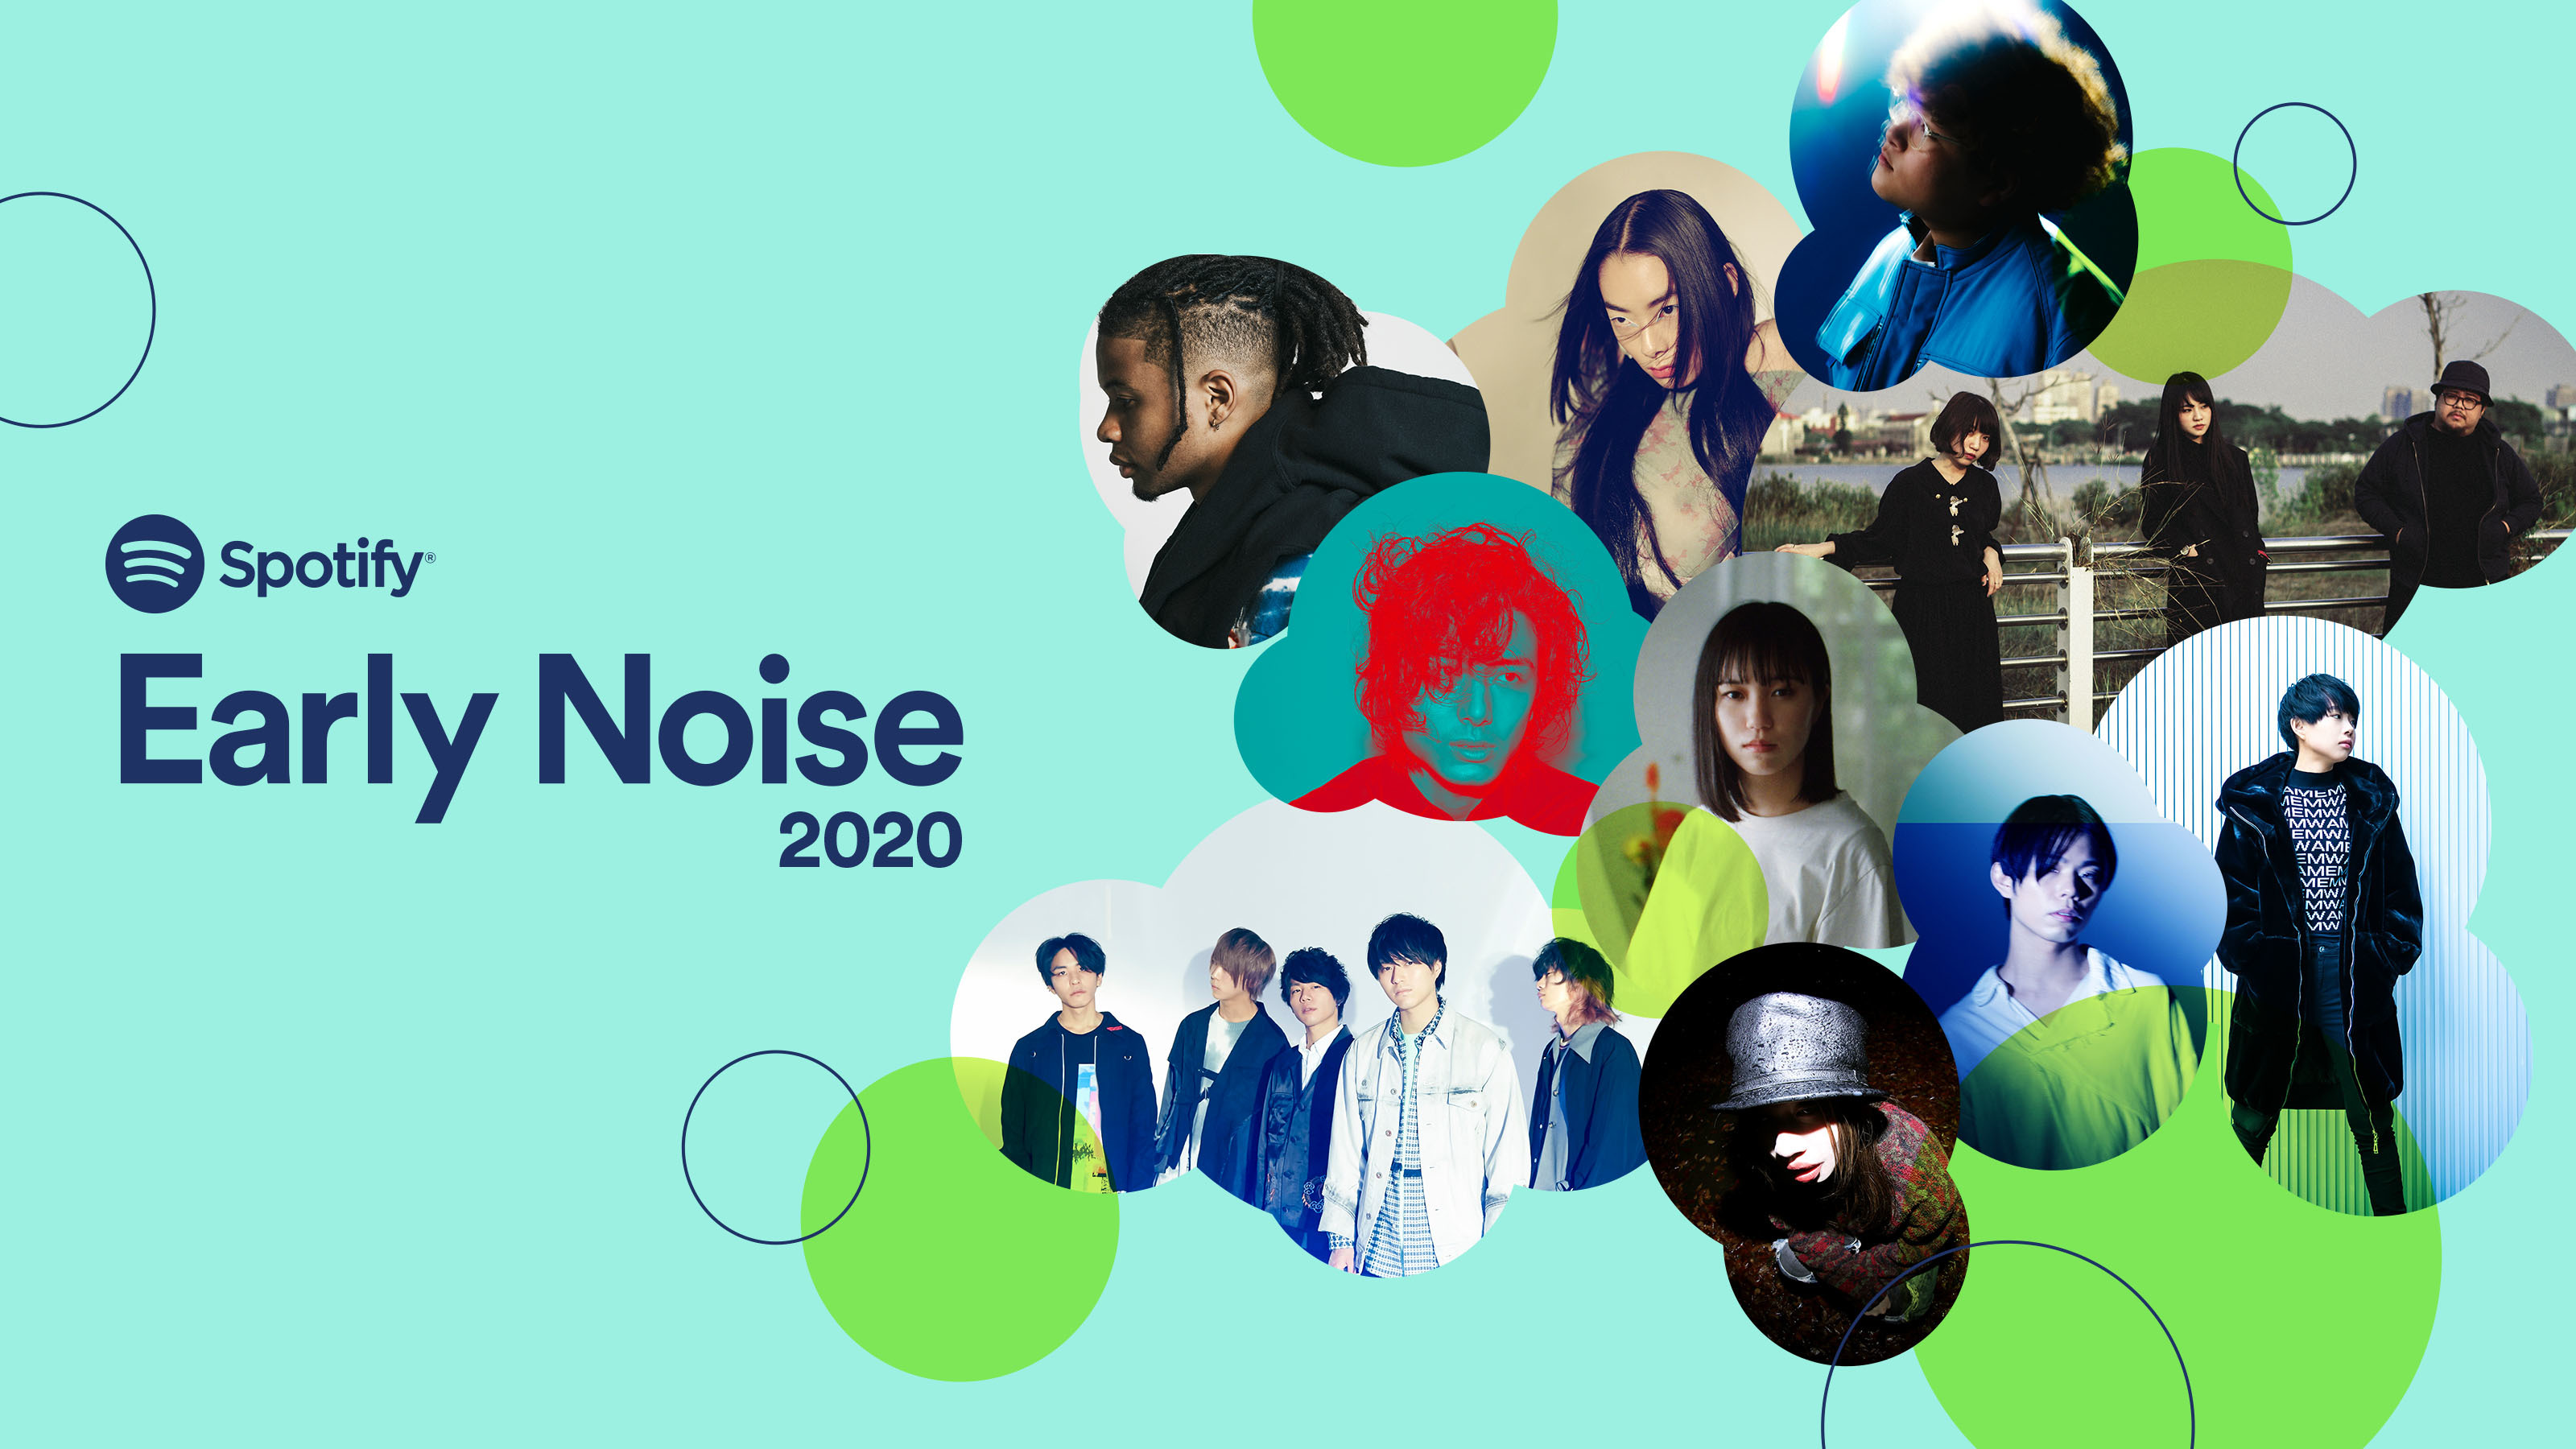 Early Noise 2020